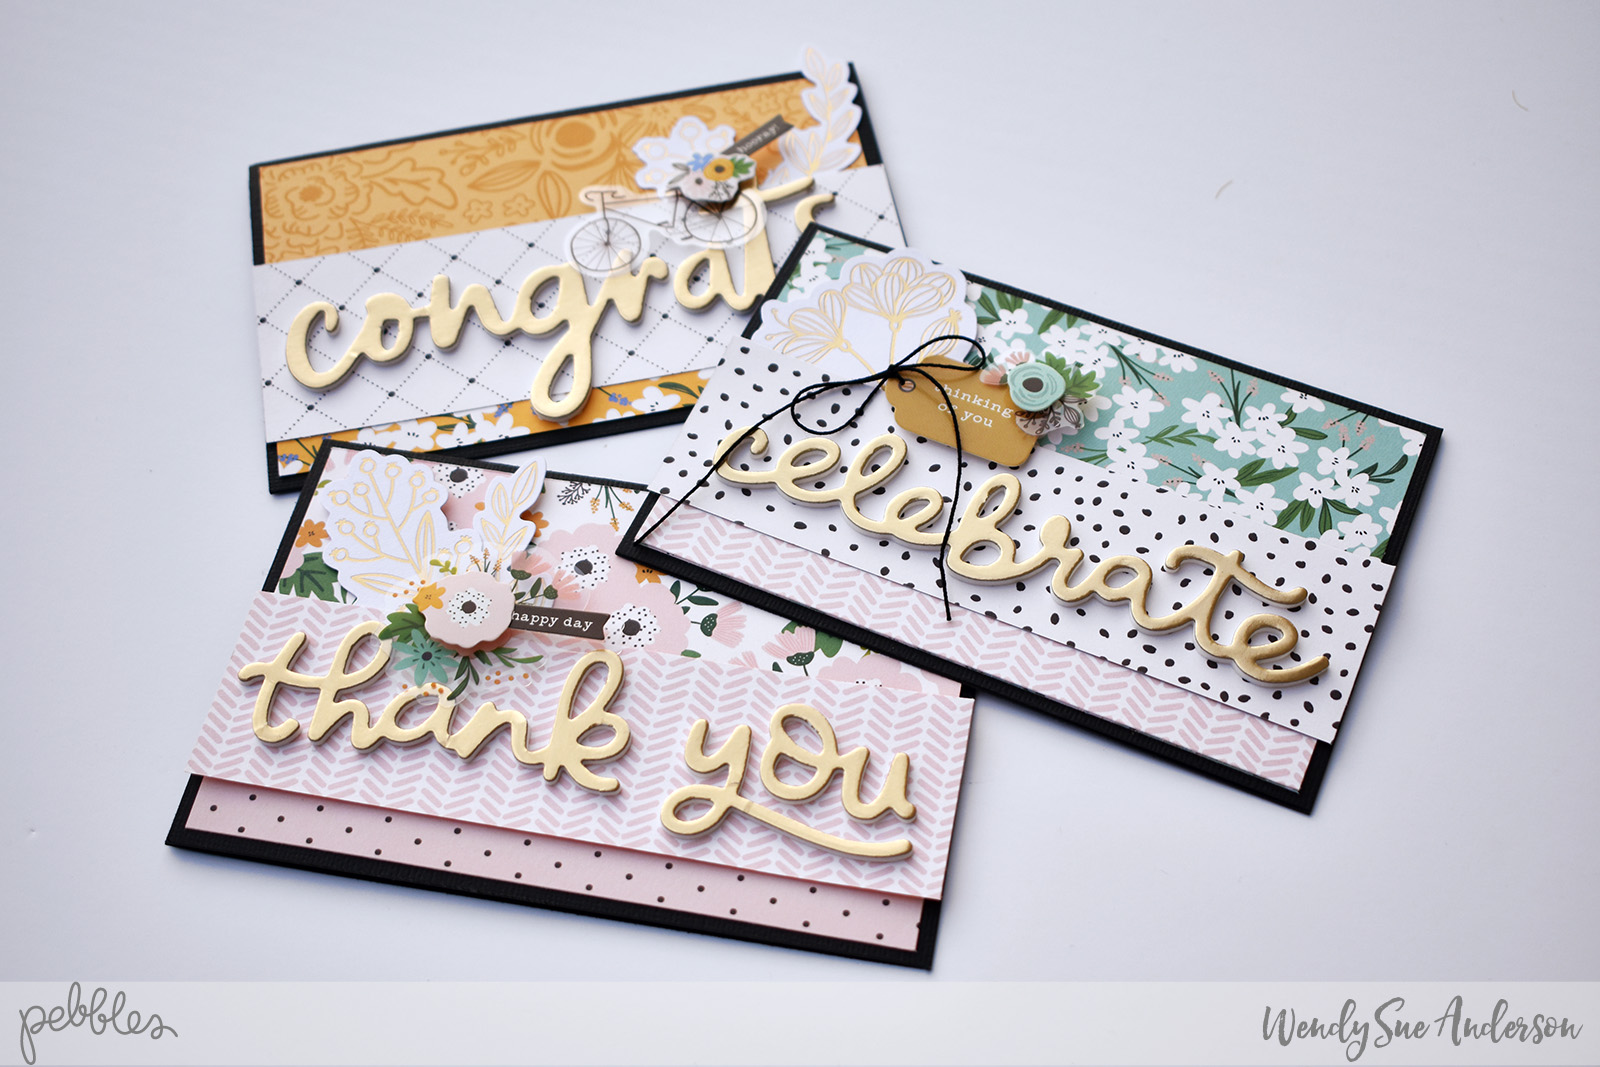 "Quick and Easy Cards by Wendy Sue Anderson featuring the ""Along the Way"" Collection by Jen Hadfield for @PebblesInc."